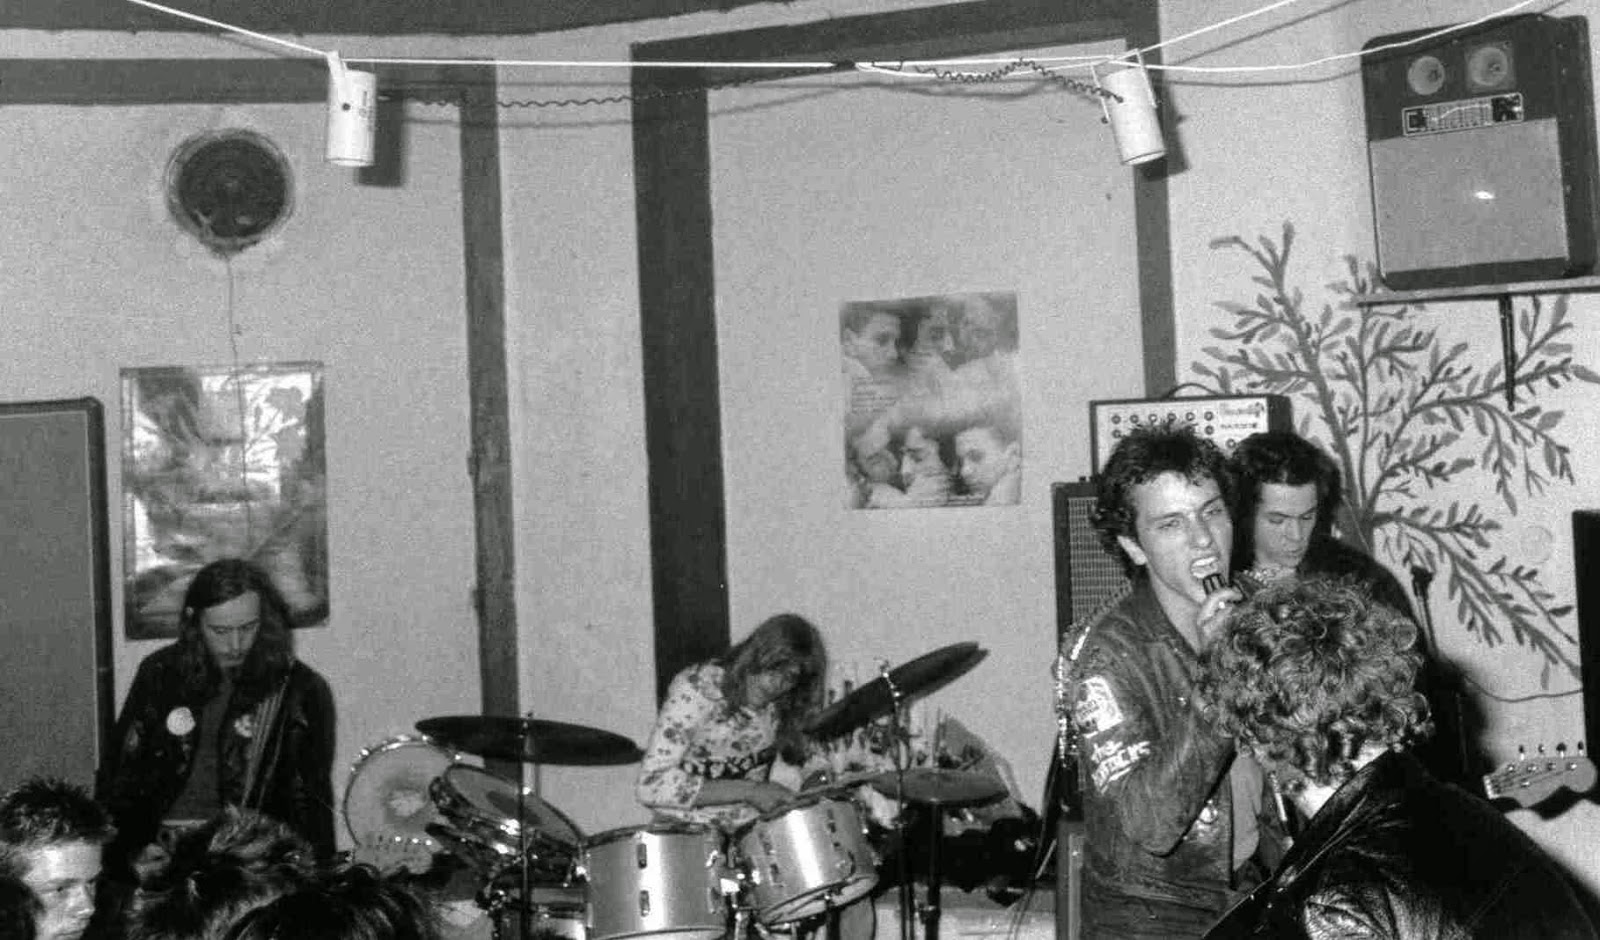 Tape Attack: Die Staubis / The Buttocks / Copslayers - Live 13.07.79 ...